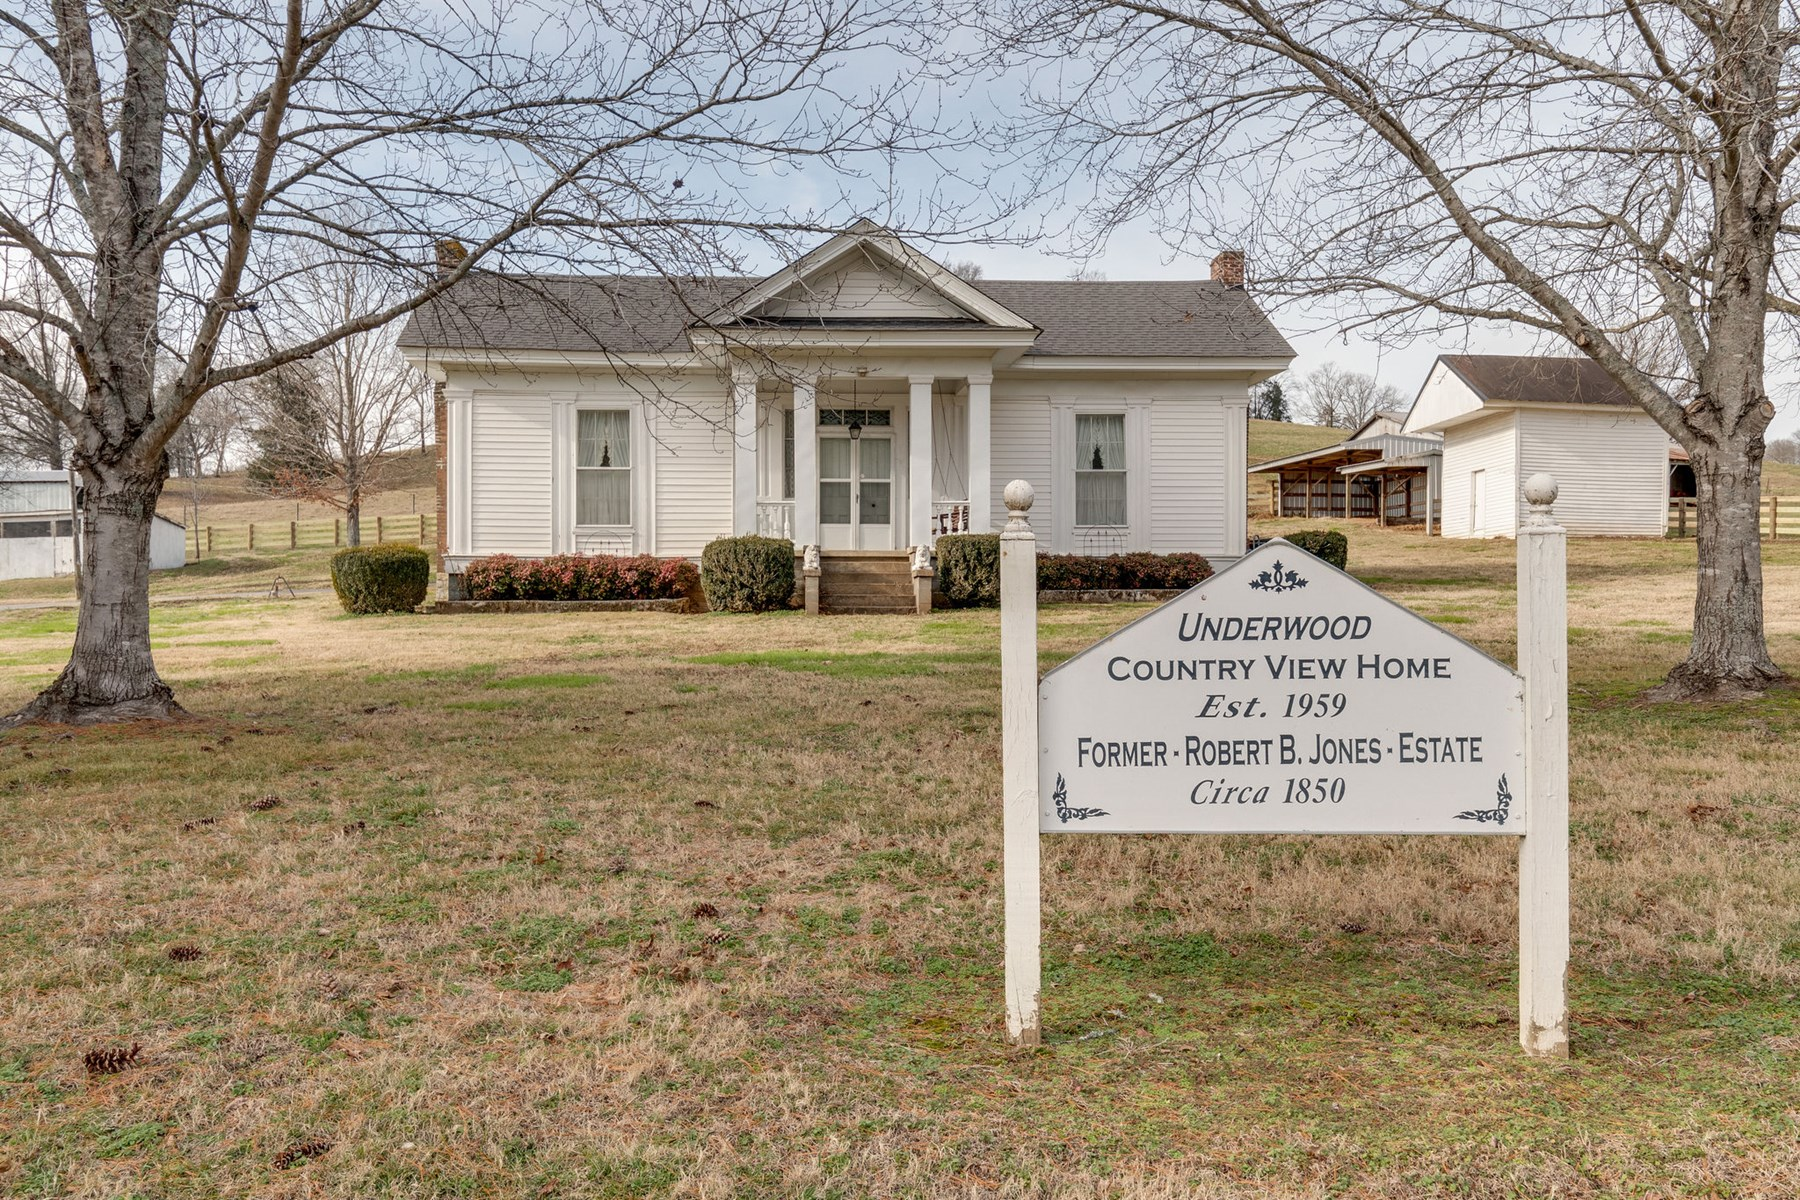 1850's Historic Home for Sale in Lynnville Tennessee